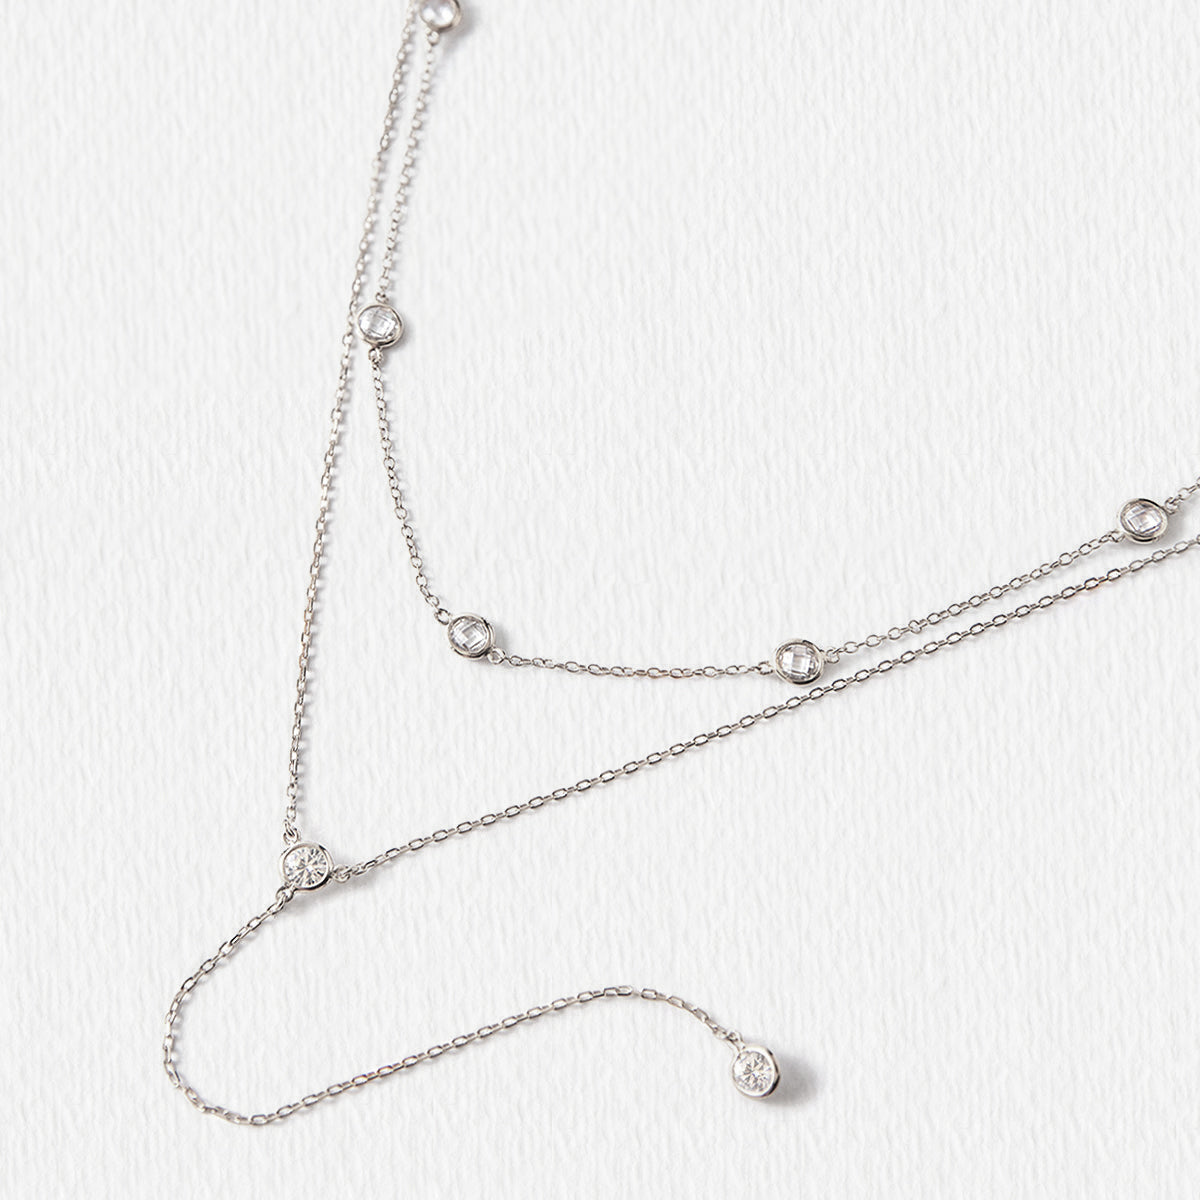 Dakota Choker Lariat Necklace Set